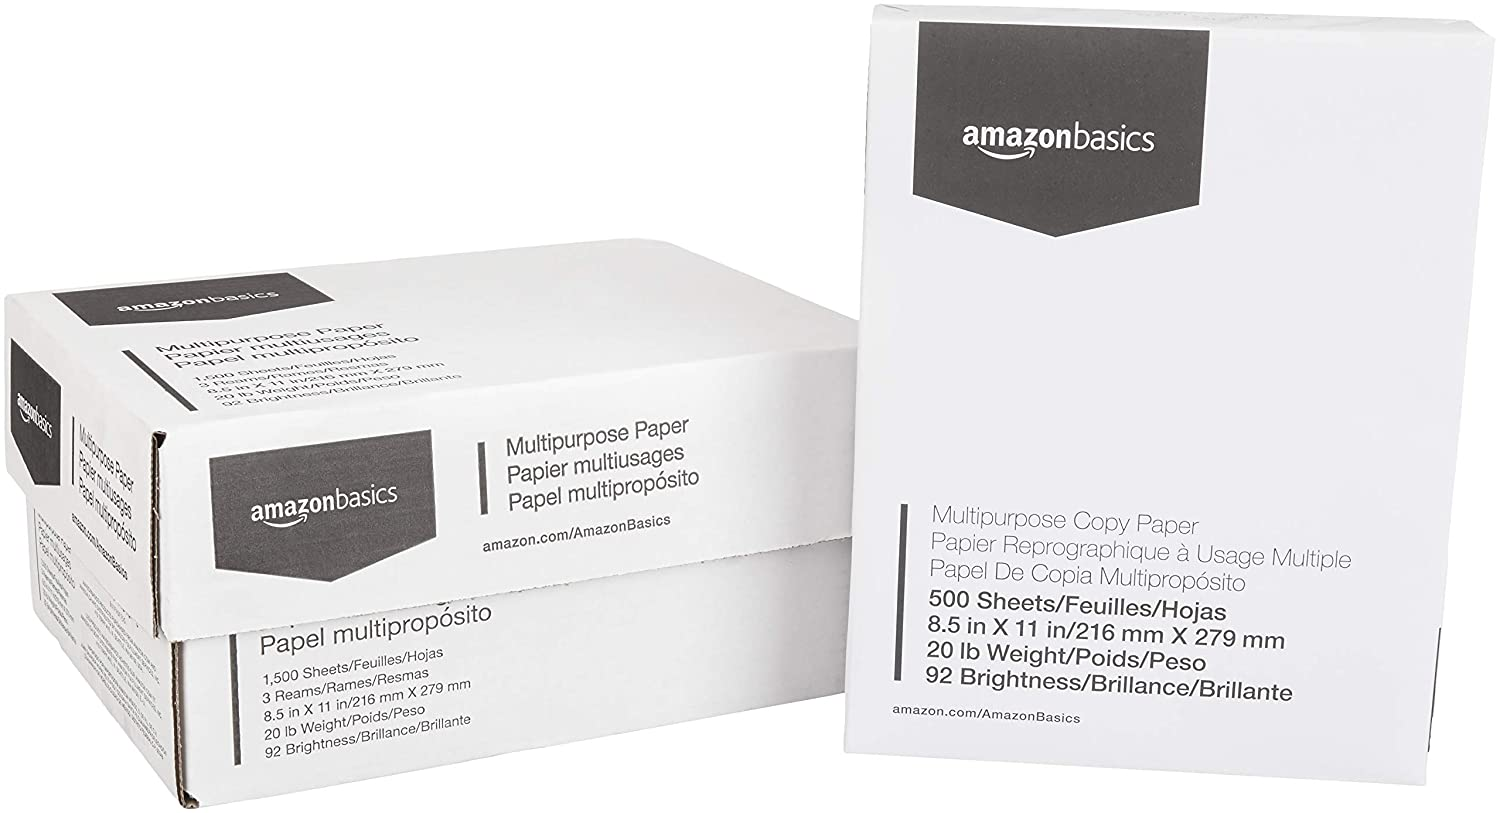 AmazonBasics 92 Bright Multipurpose Copy Paper - 8.5 x 11 Inches, 3 Ream Case (1,500 Sheets)